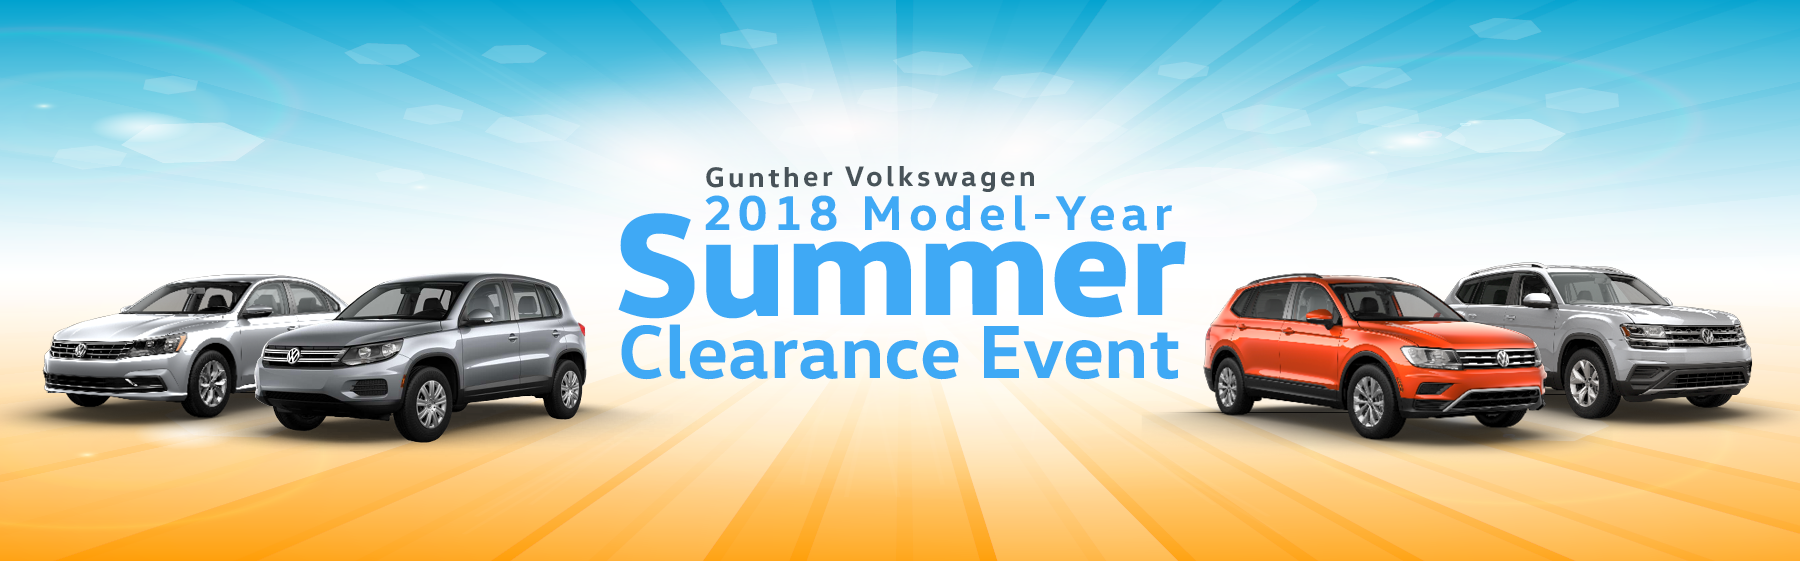 Gunther Volkswagen 2018 Model-Year Summer Clearance Event